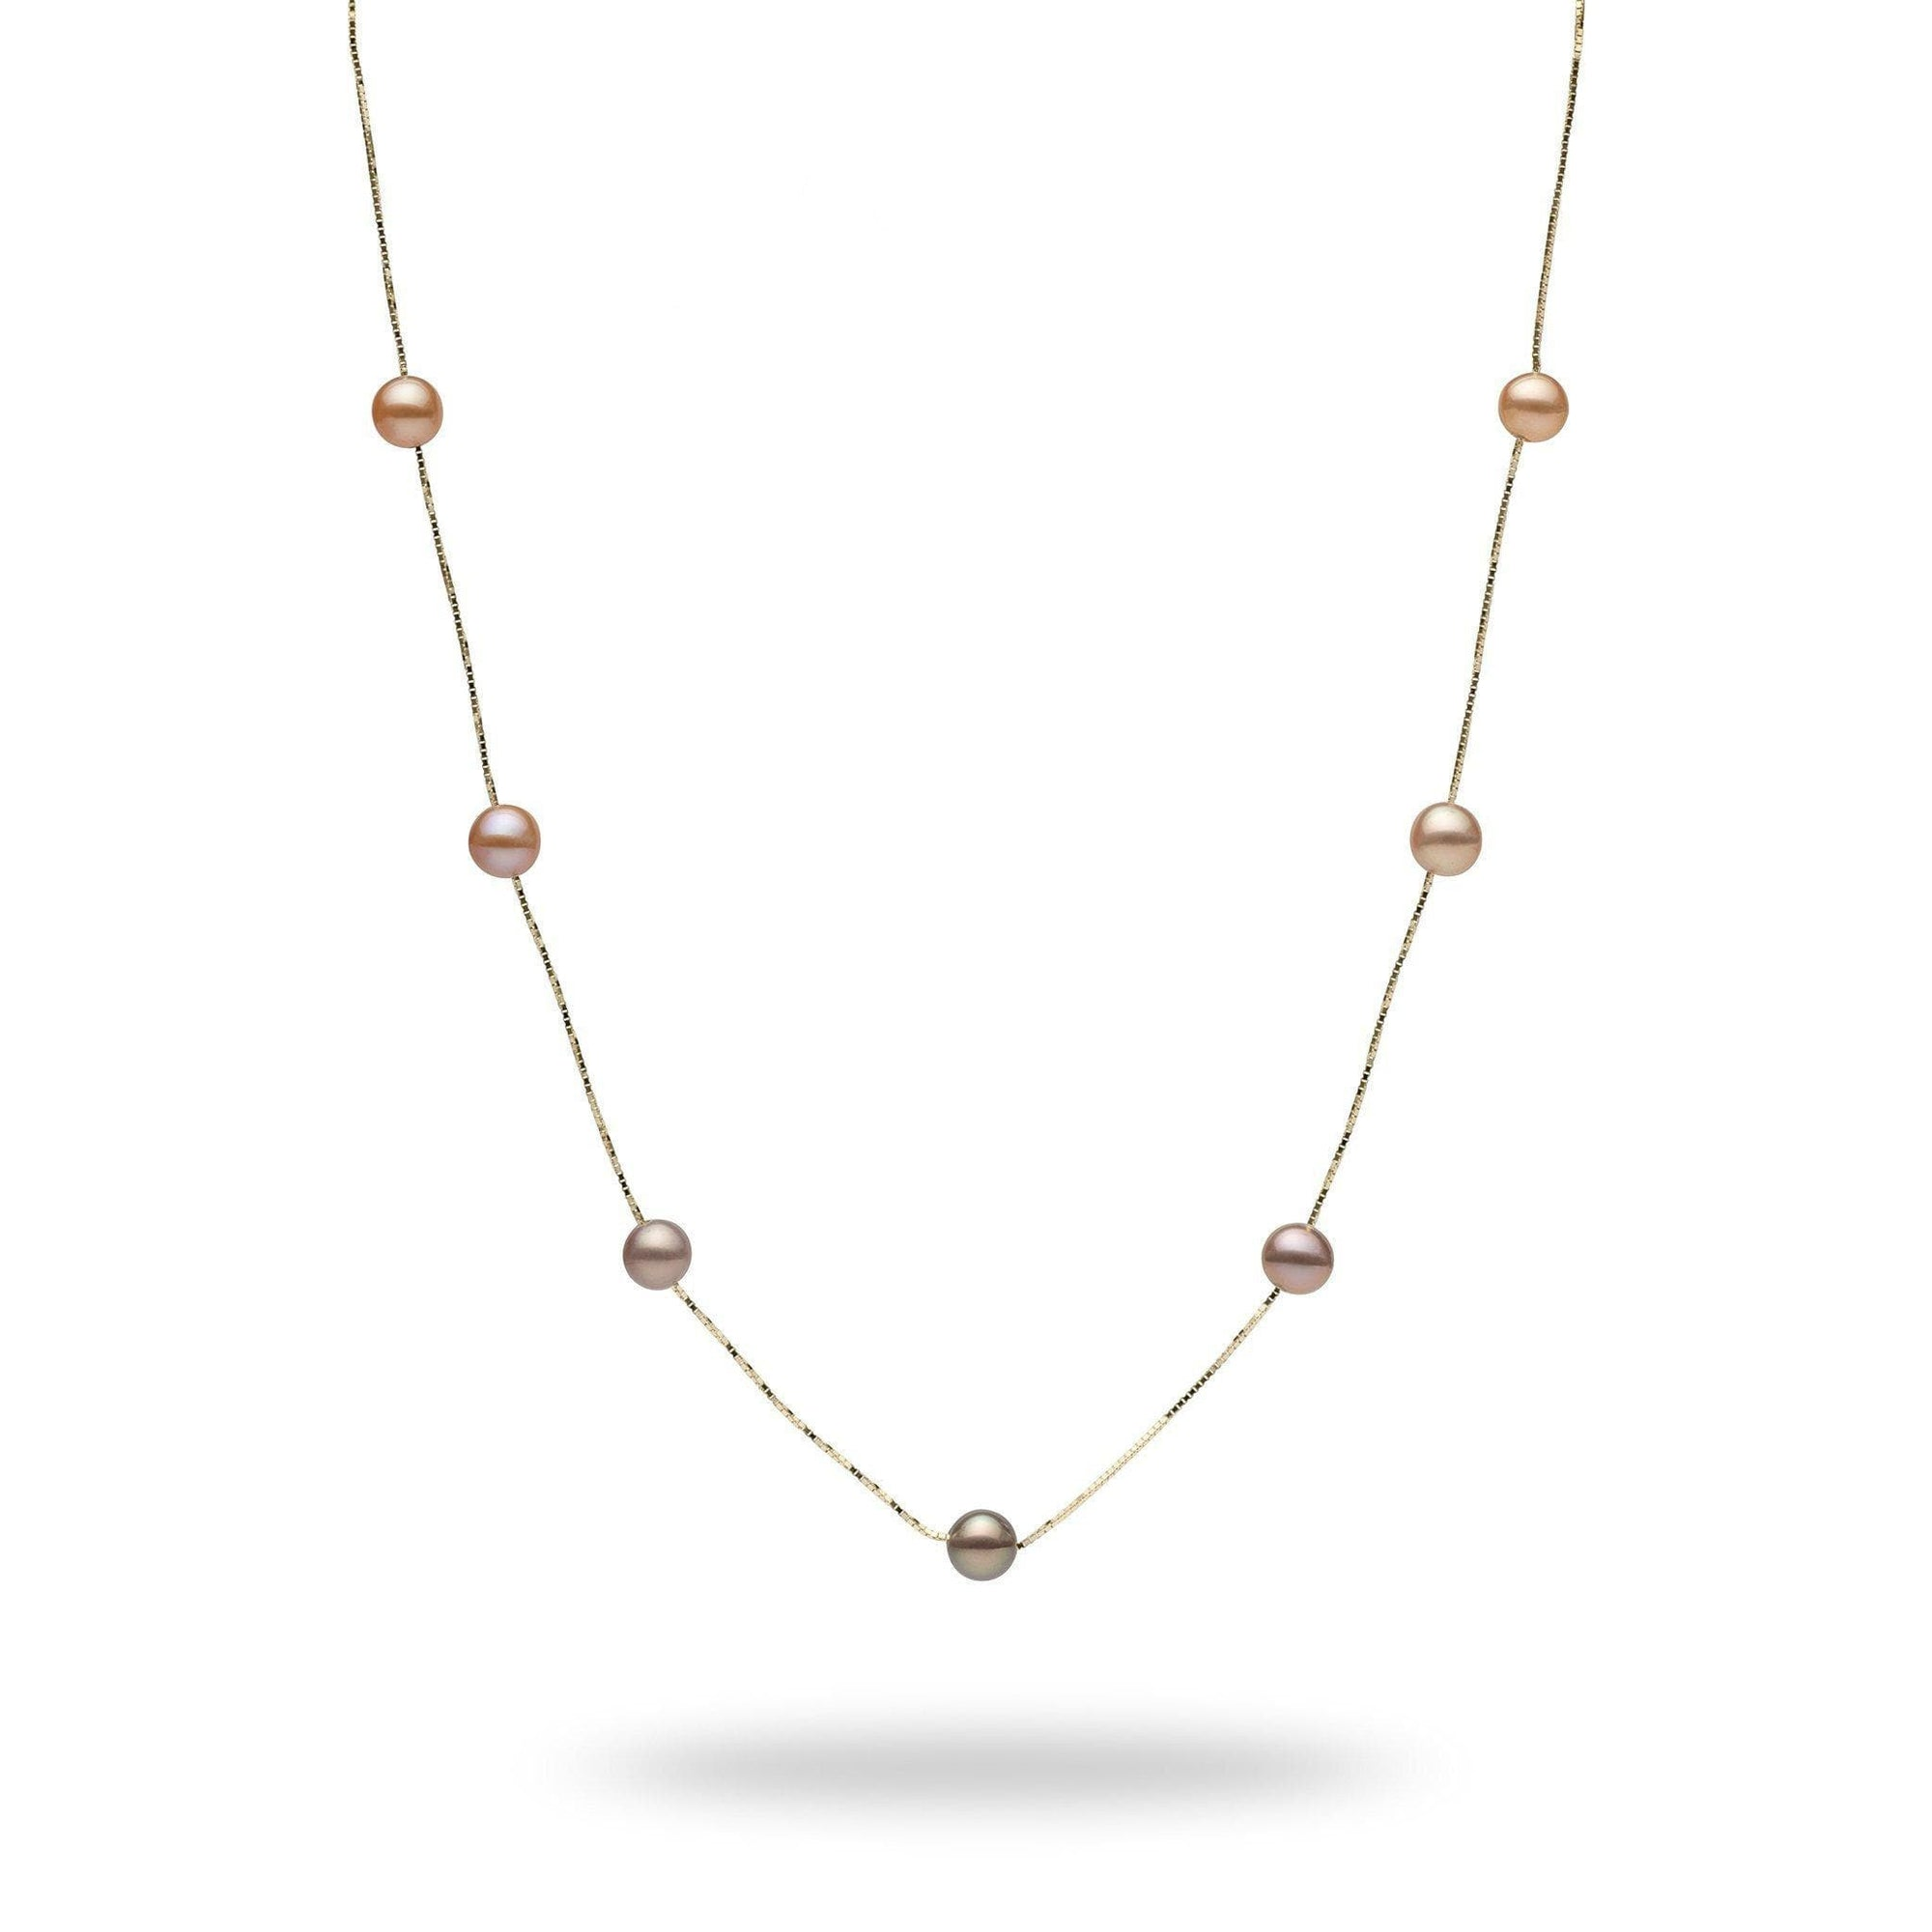 Pink, Purple, and Peach Mixed Freshwater Pearl Necklace in 14K Yellow Gold - Maui Divers Jewelry